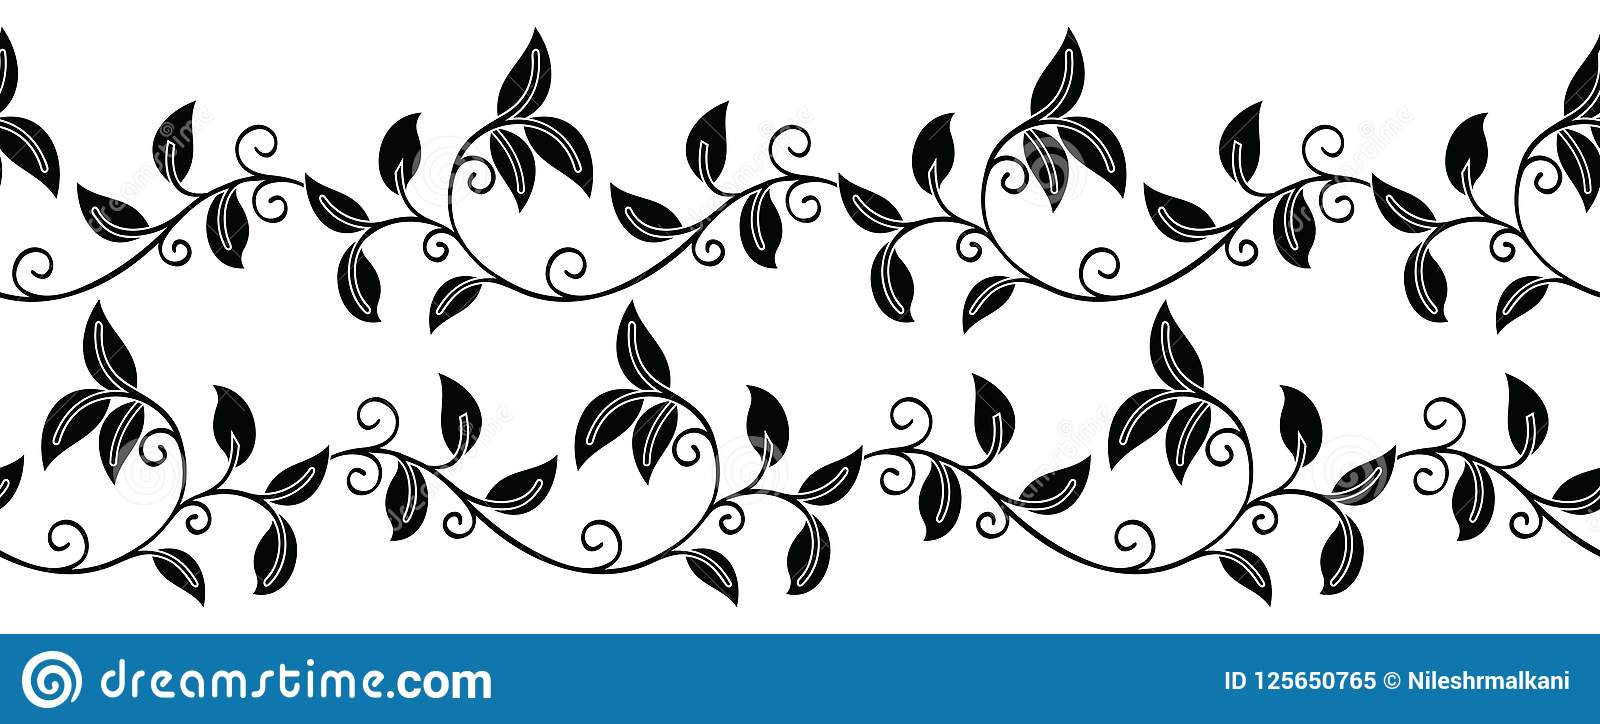 Seamless Black And White Leaves Border Stock Vector.